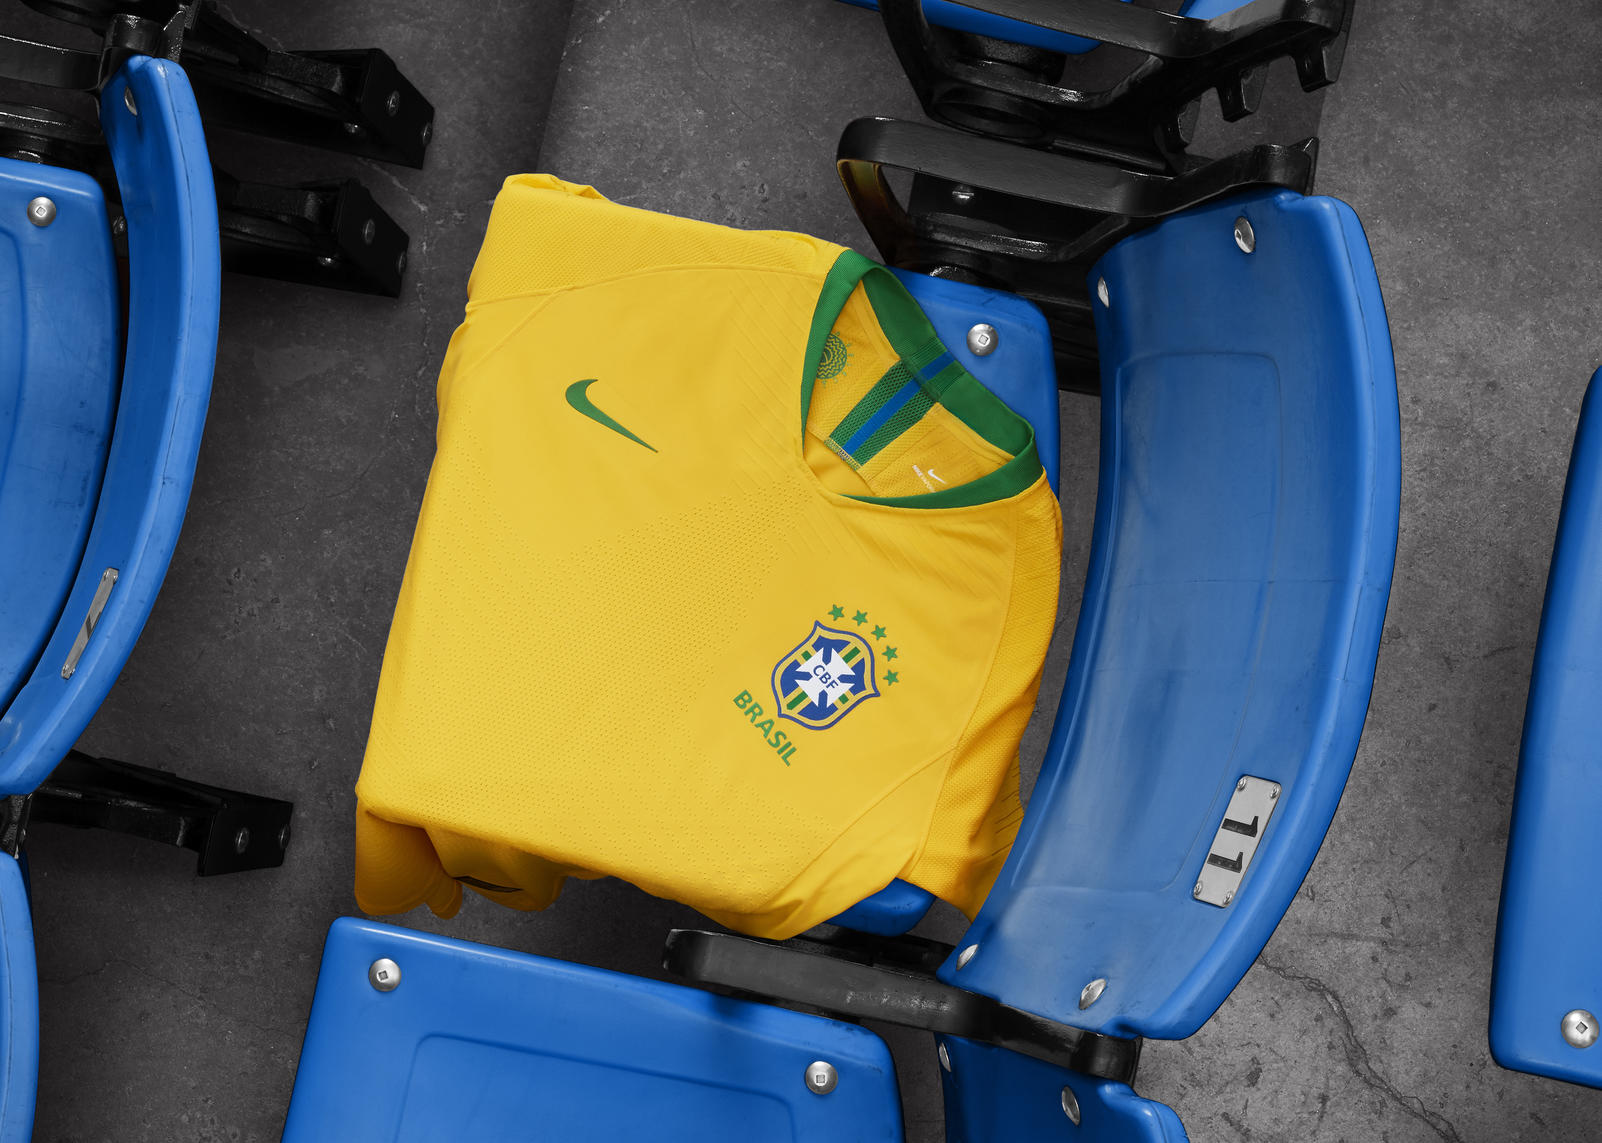 brasil-2018-home-jersey-01_rectangle_1600.jpg